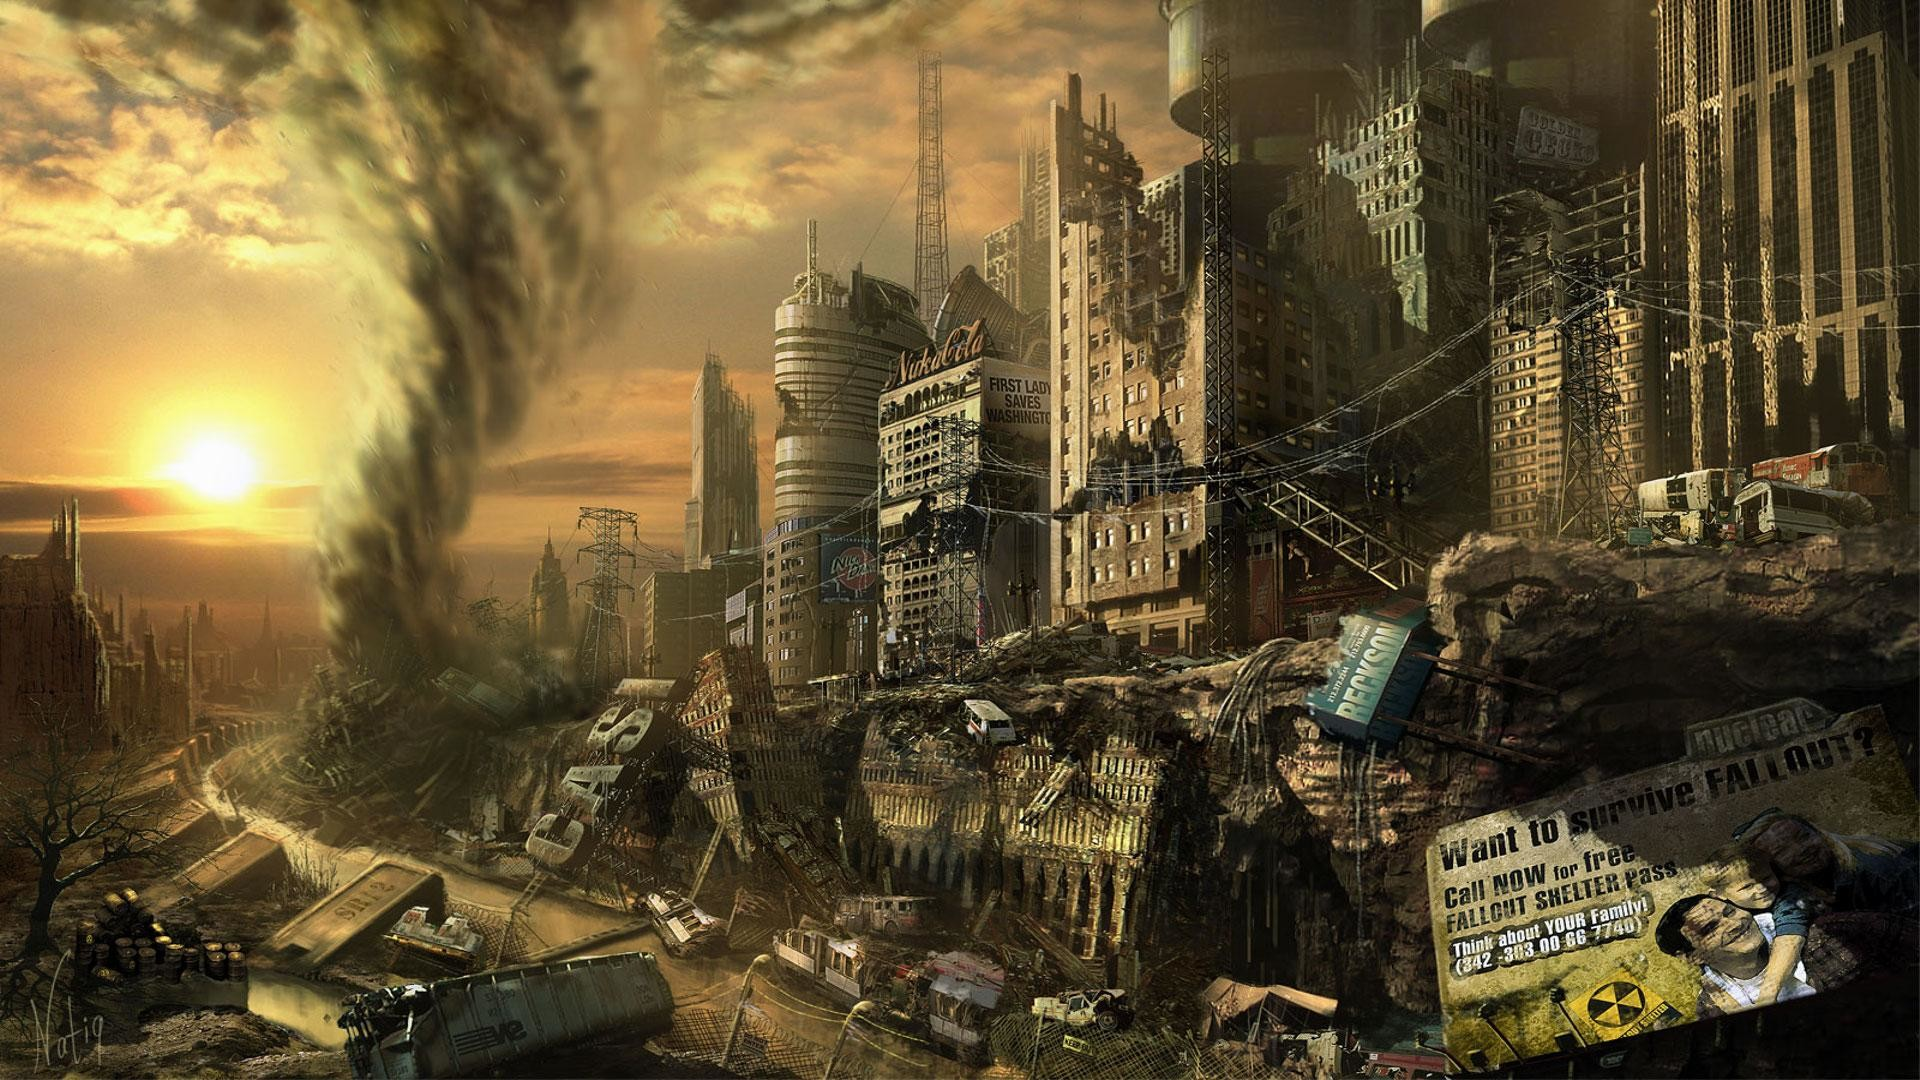 Free-download-games-fallout-pictures-images